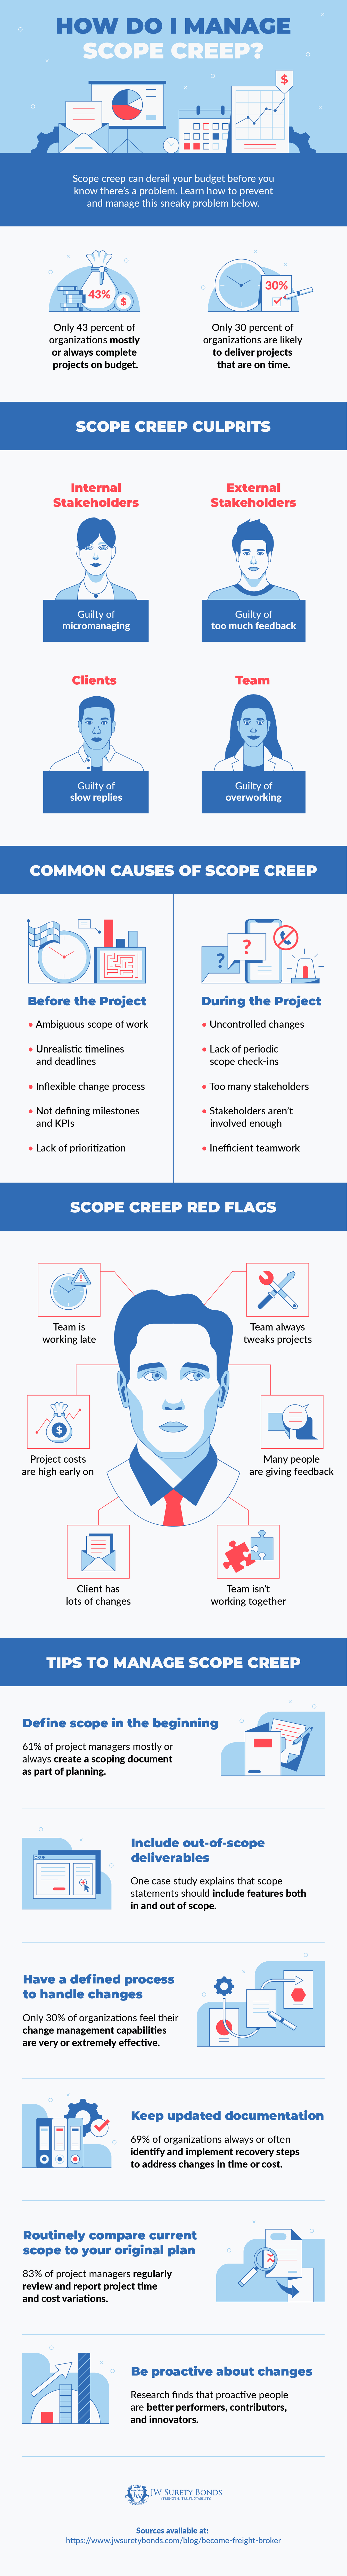 how-to-manage-scope-creep-project-management